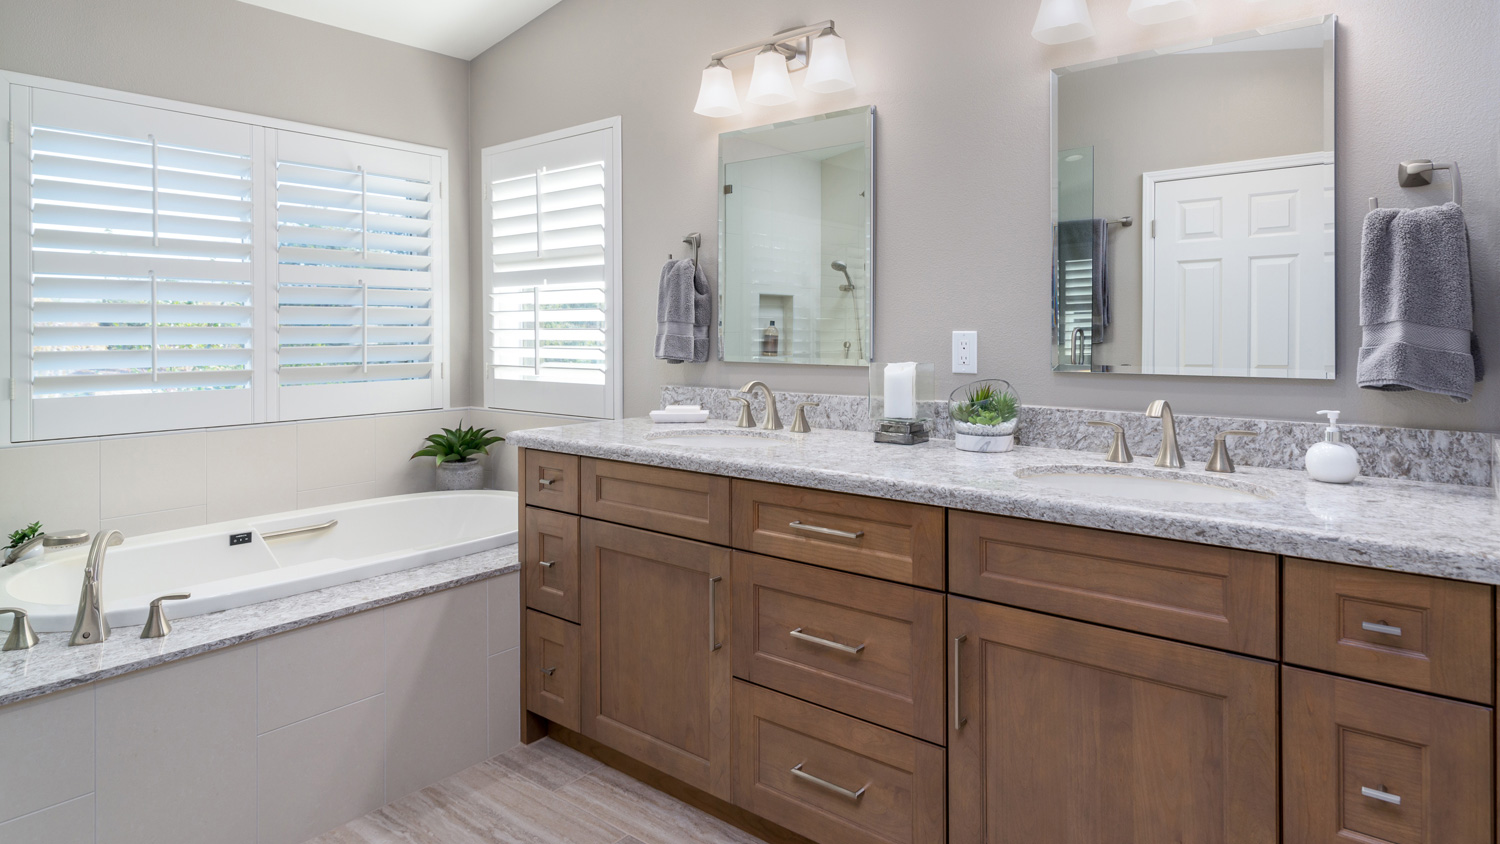 Featured Project: Tranquil Master Bathroom & Handsome Home Office Remodel